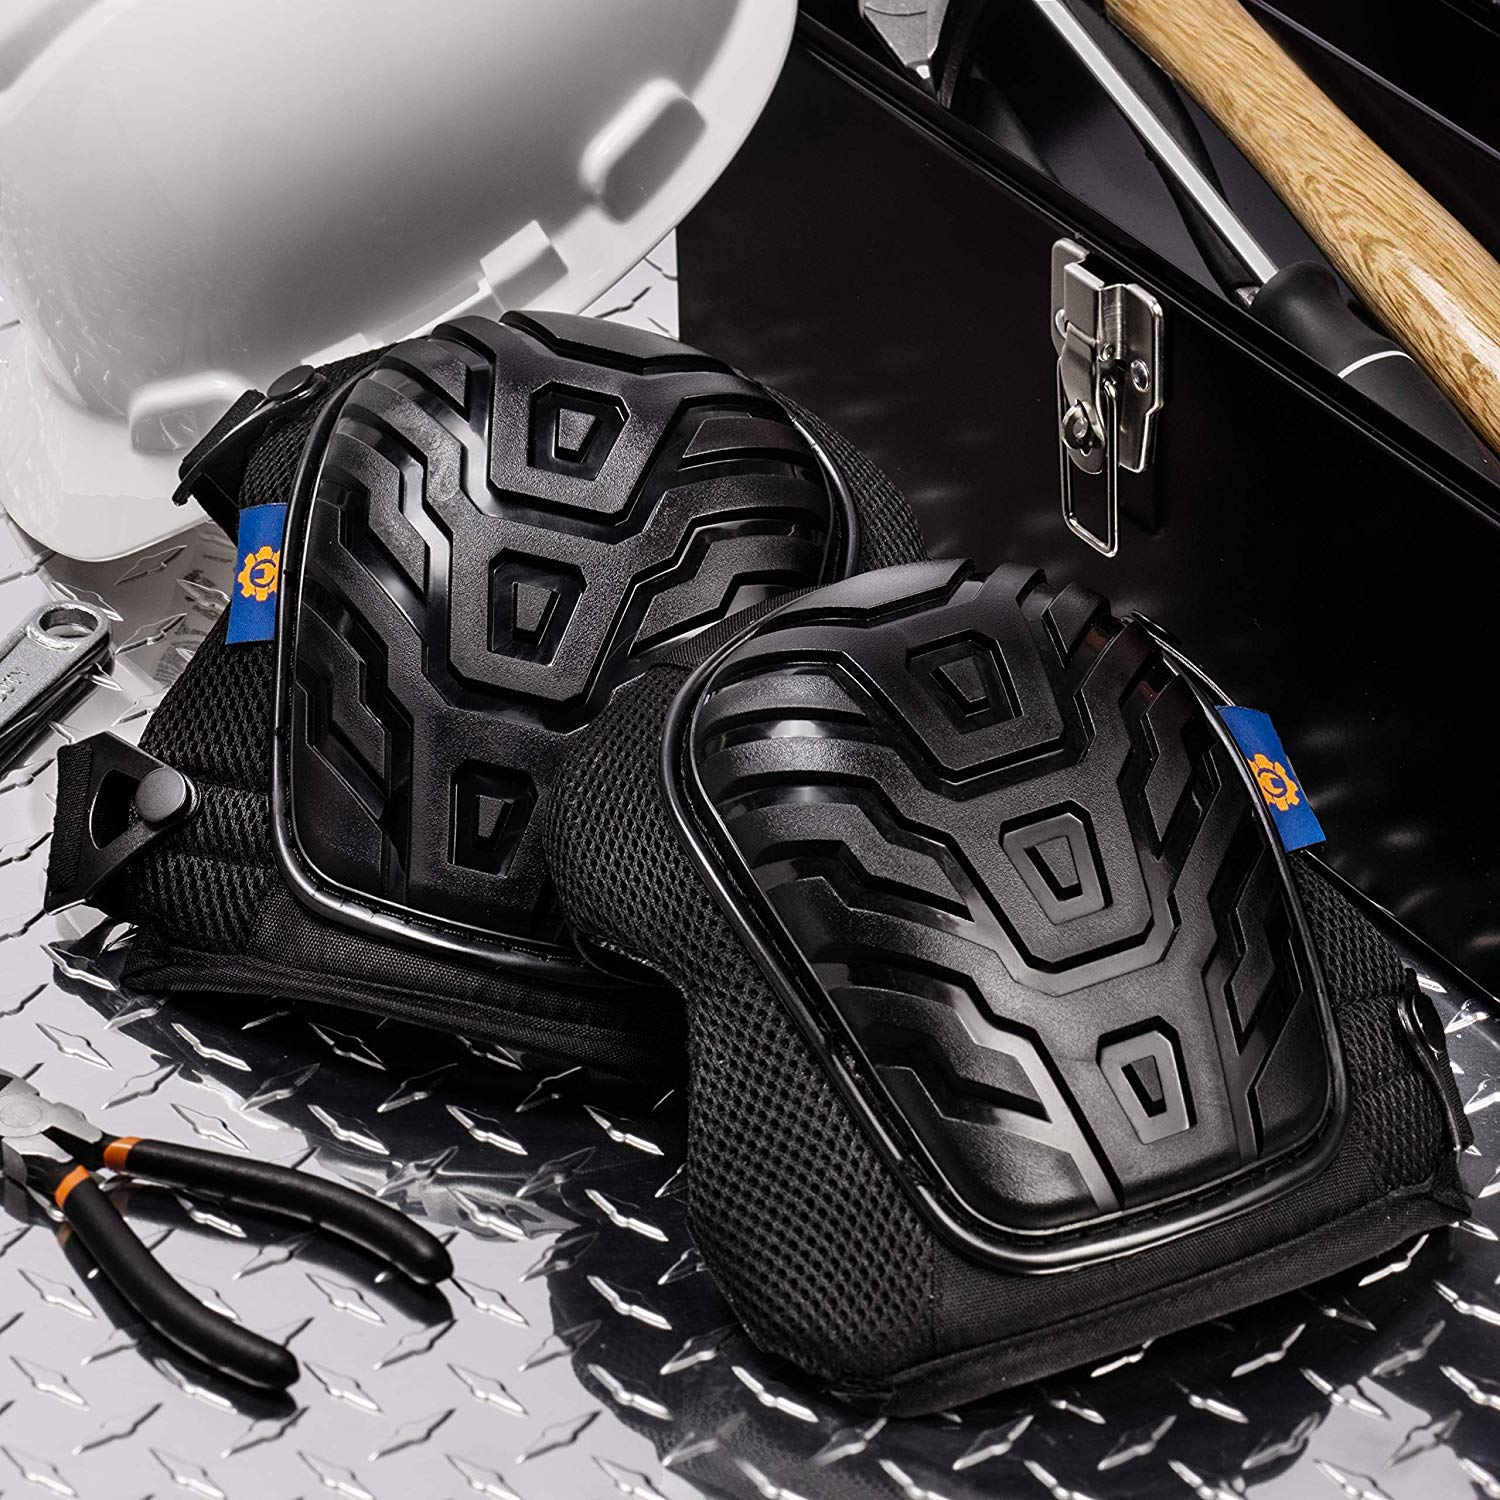 Rough Work Gear Professional Knee Pads - Built Tough To Last - Will Stay In Place All Day Long by Rough Work Gear (Image #3)